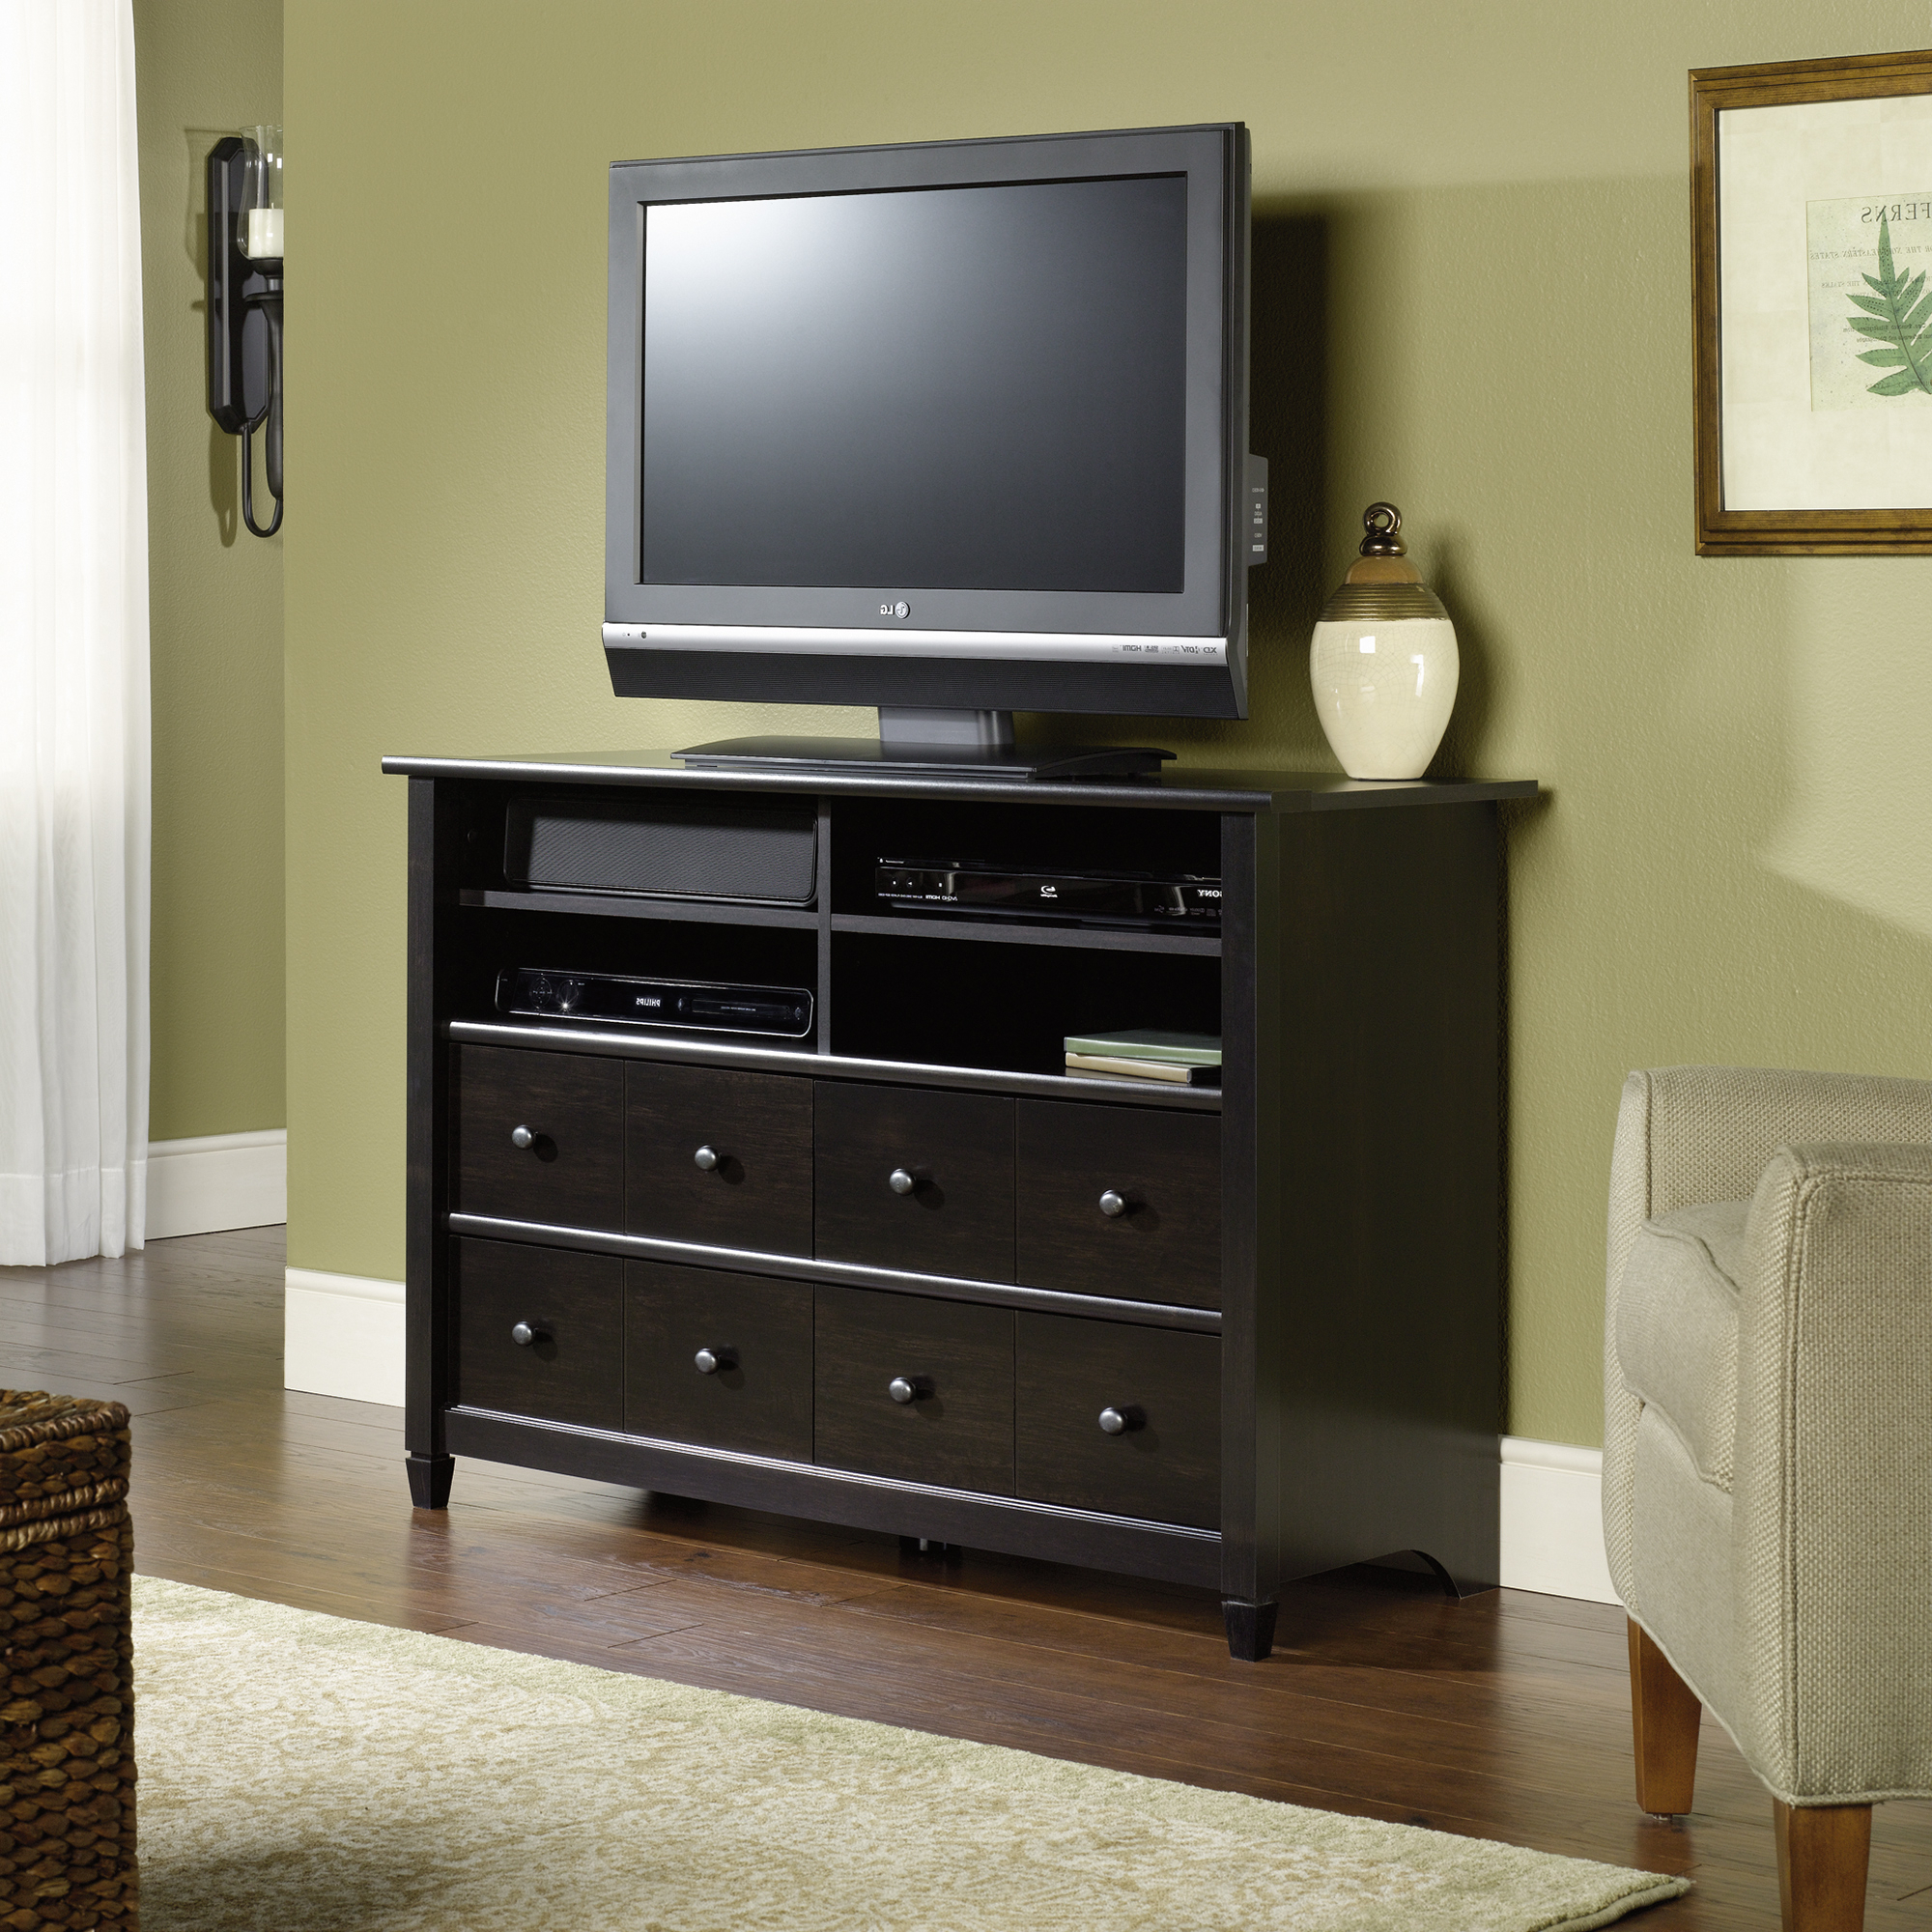 Sauder Pertaining To Most Popular Highboy Tv Stands (Gallery 2 of 20)